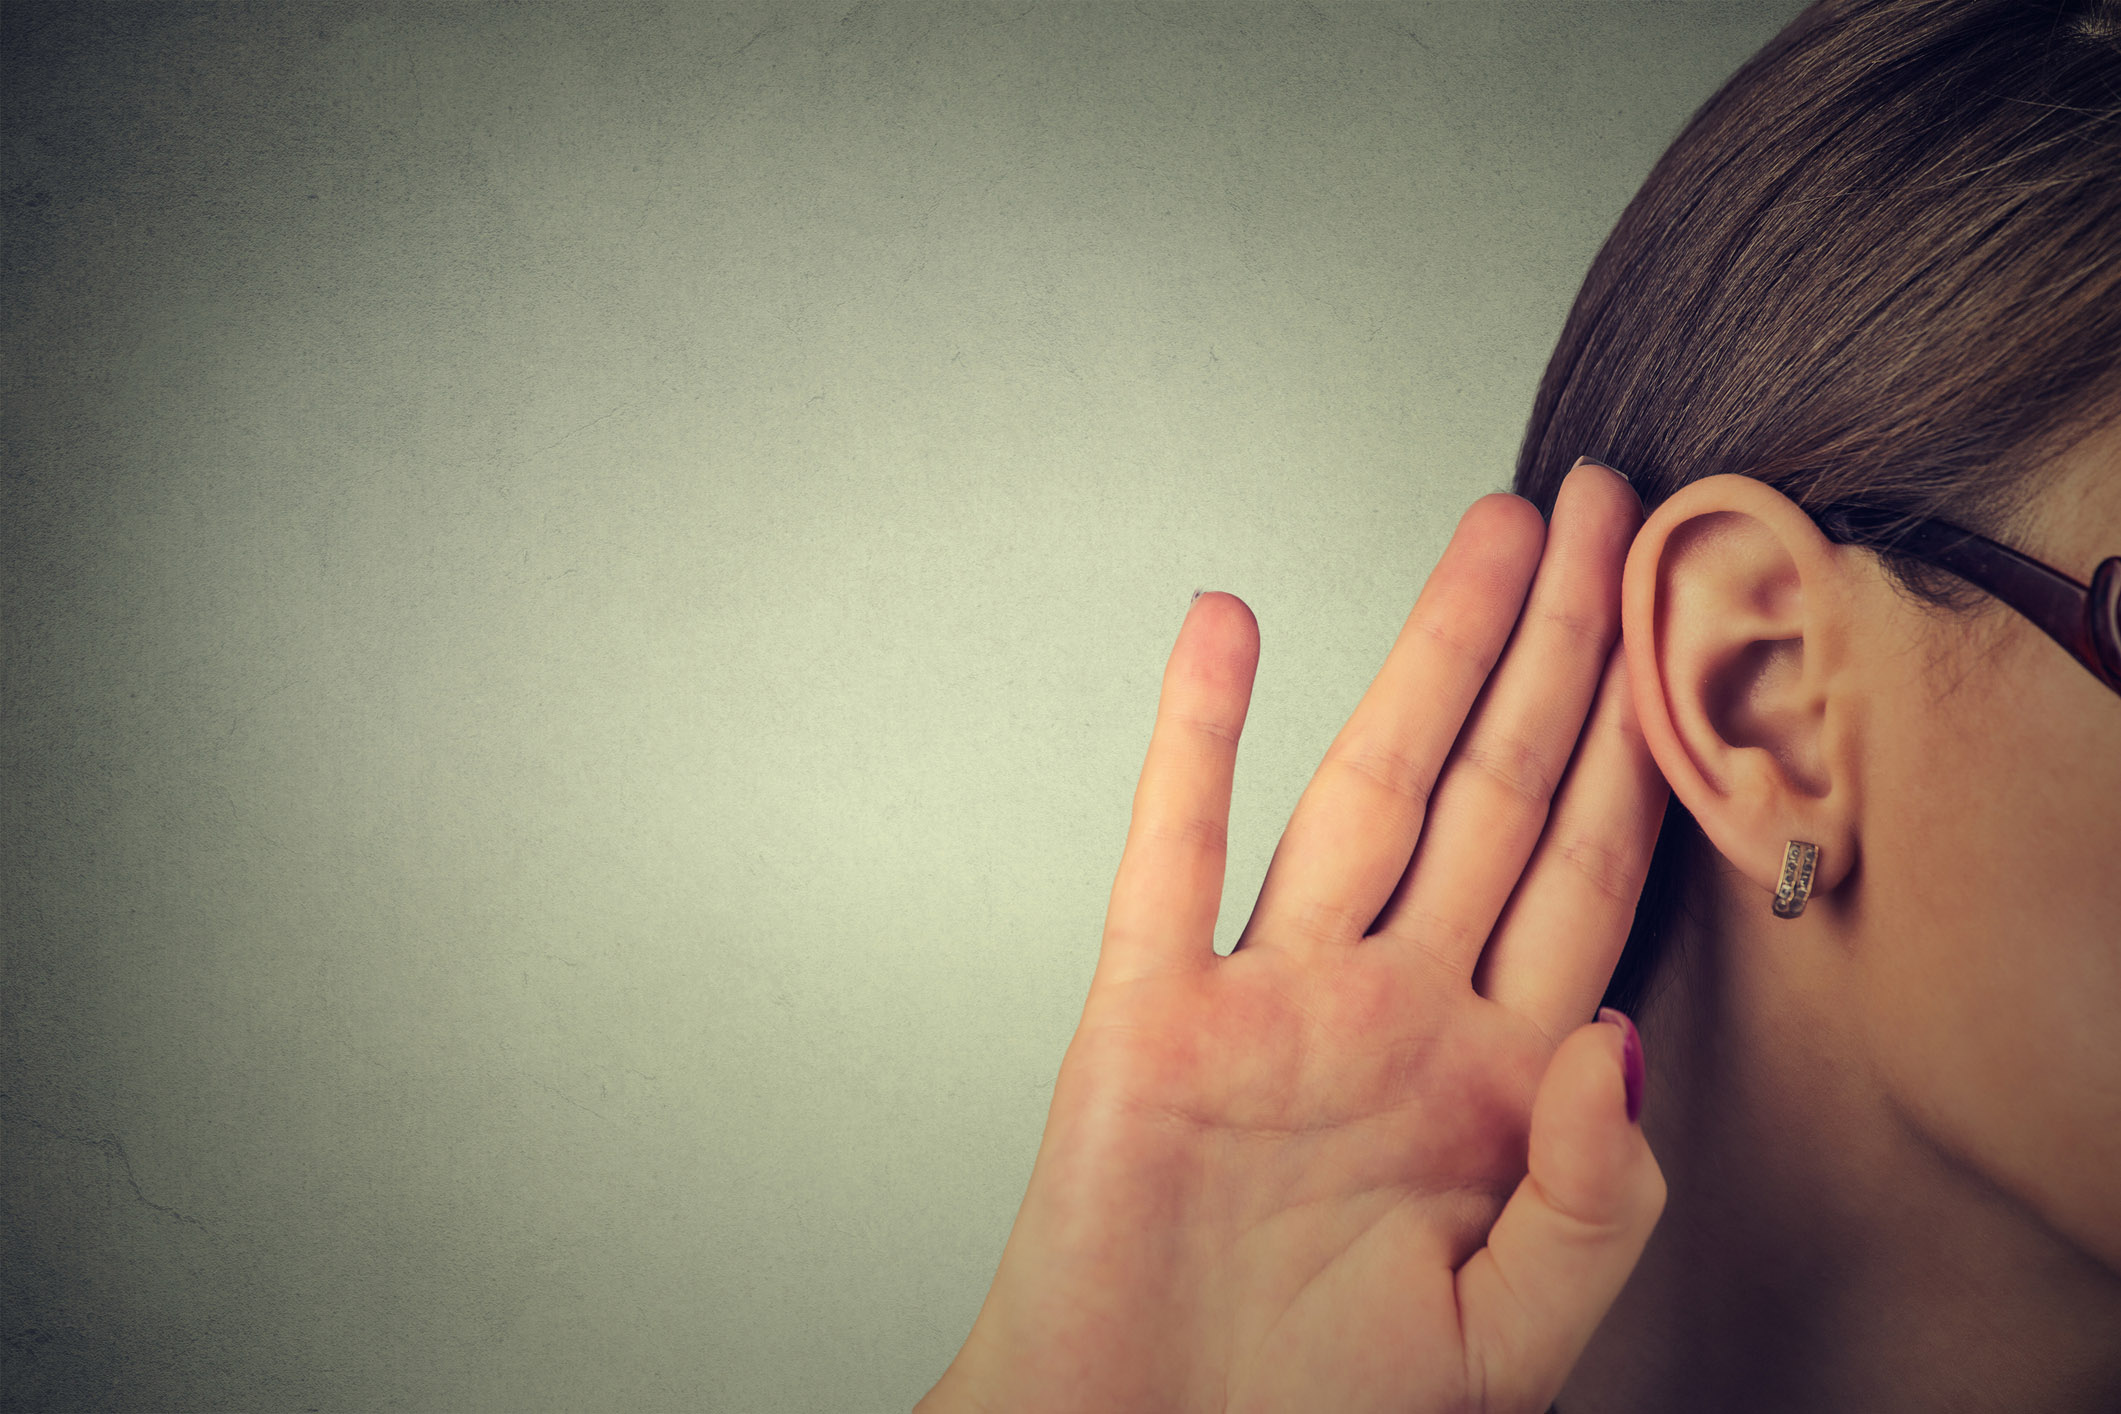 A woman cupping her ear to hear better